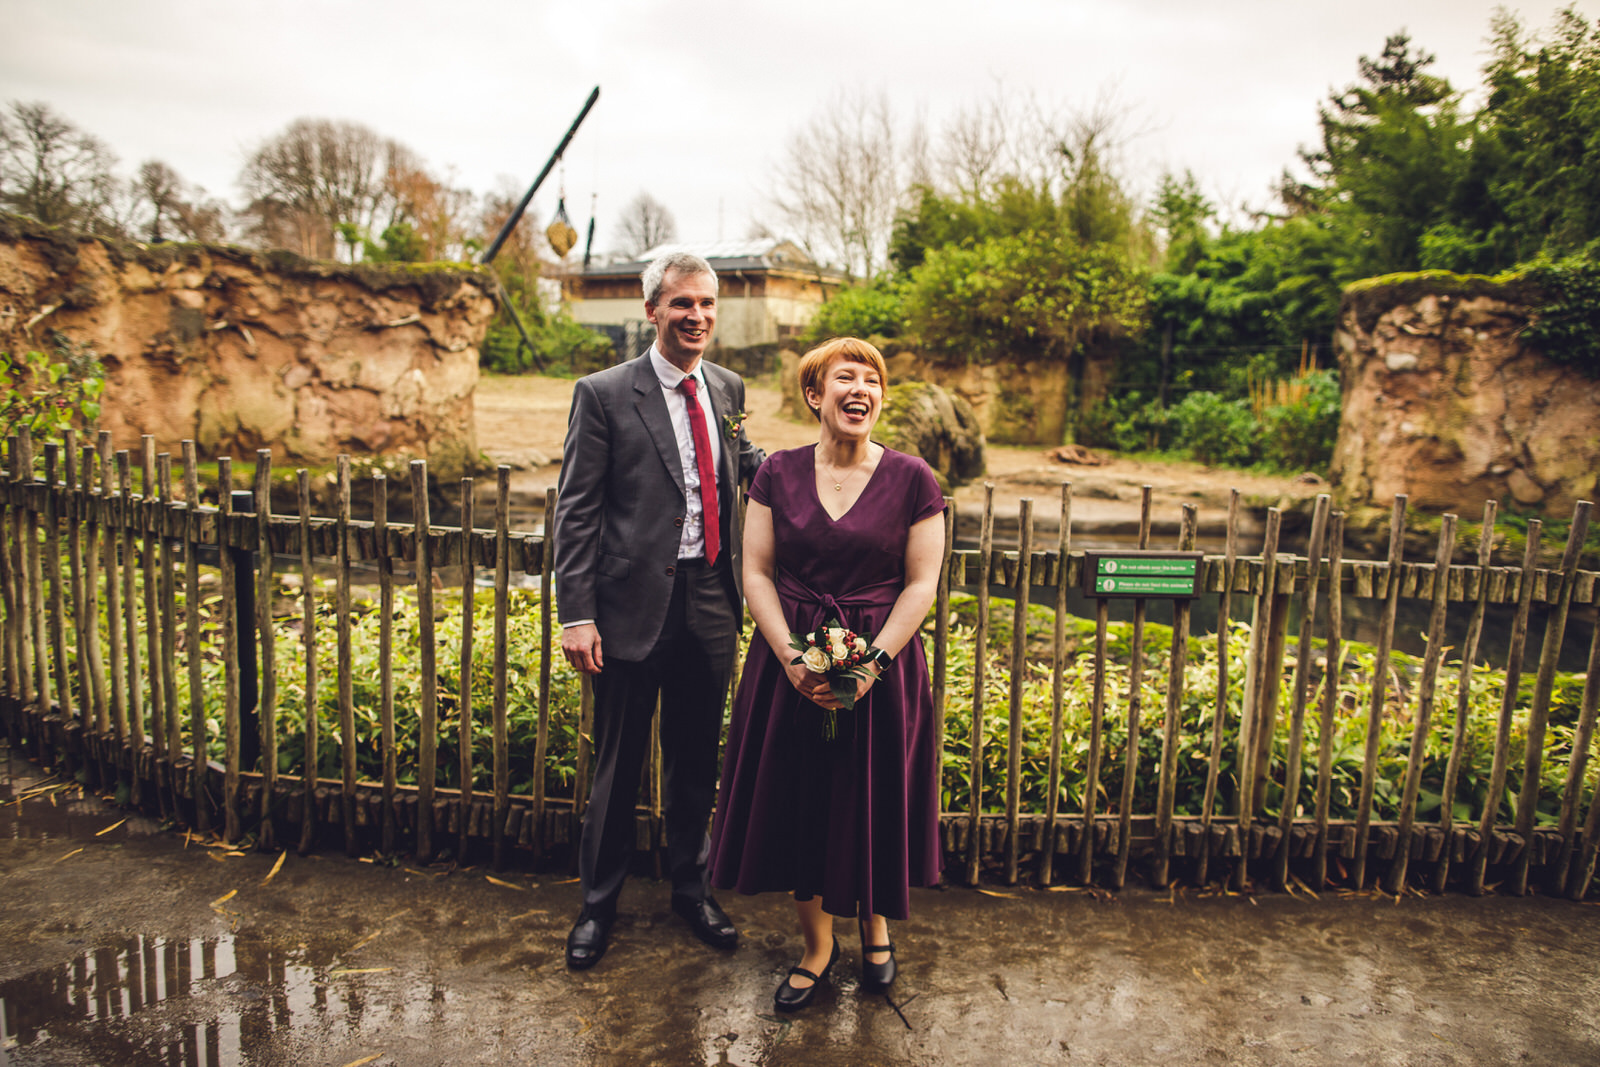 Roger_kenny-wedding-photographer-wicklow-dublin-zoo_058.jpg